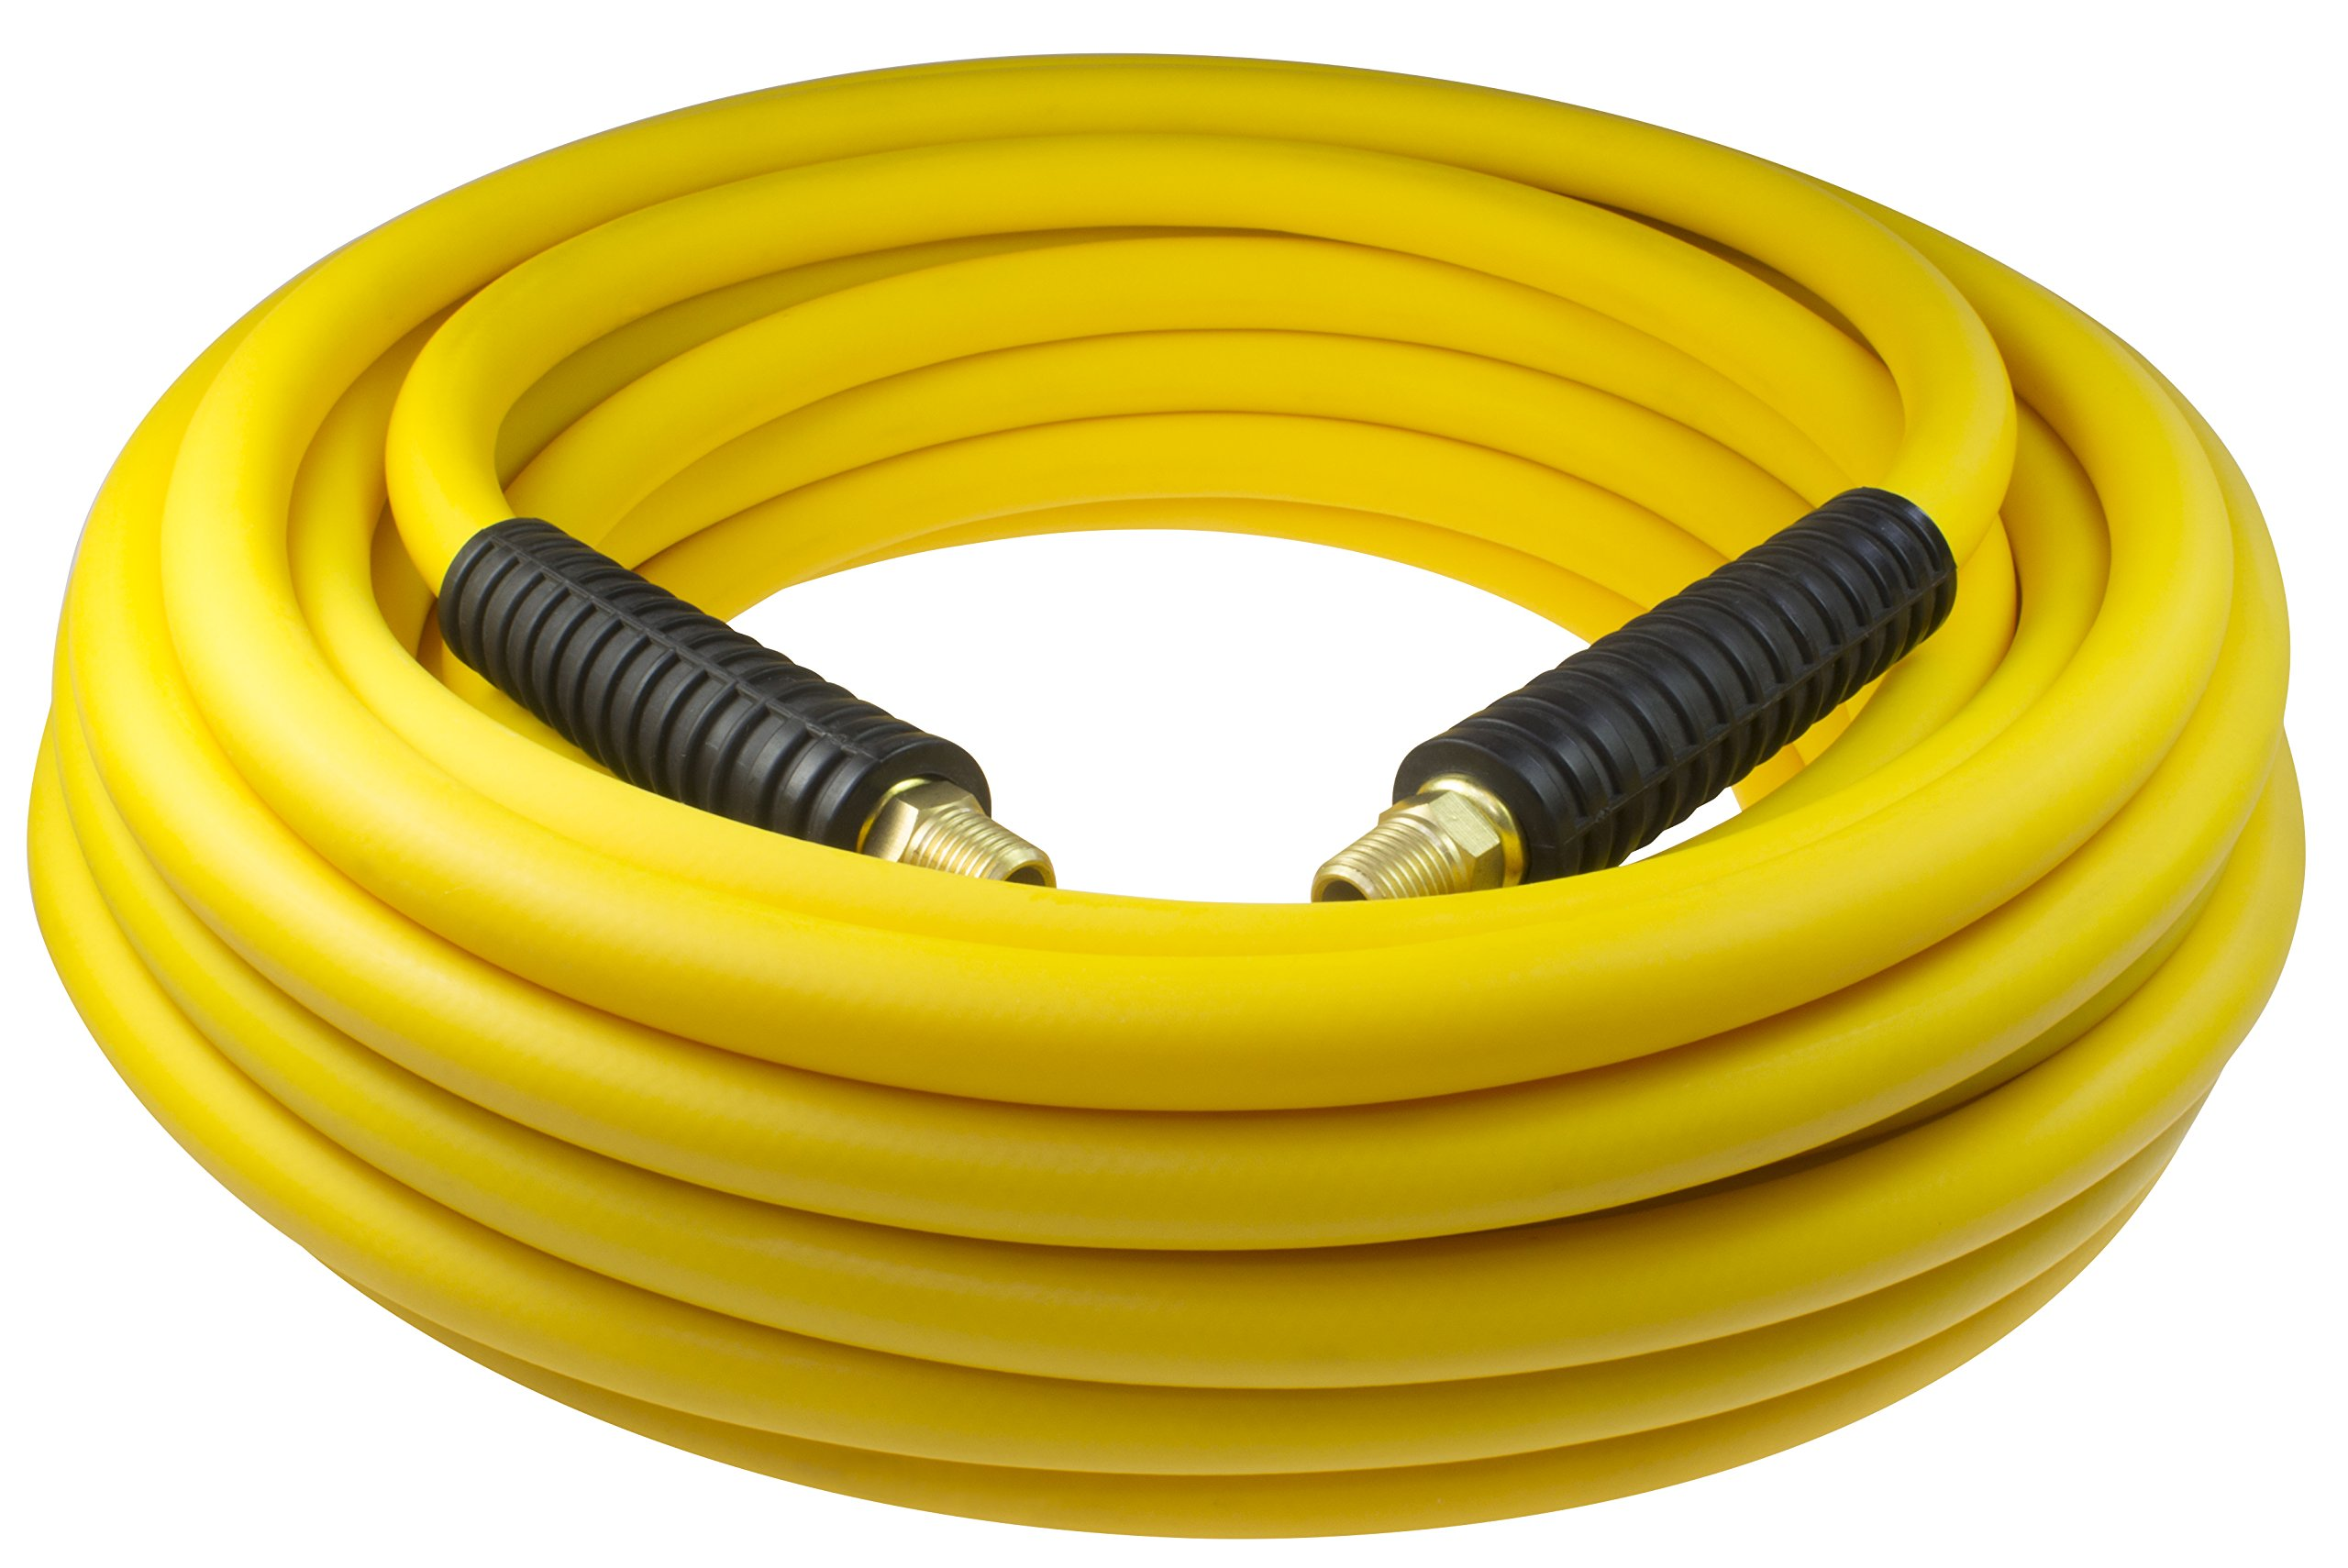 Coilhose Pneumatics YB40504Y Hybrid PVC Yellow Belly Hose, 1/4'' MPT Fitting Connection, 300 psi Maximum Pressure, 50' Length, 1/4'' ID